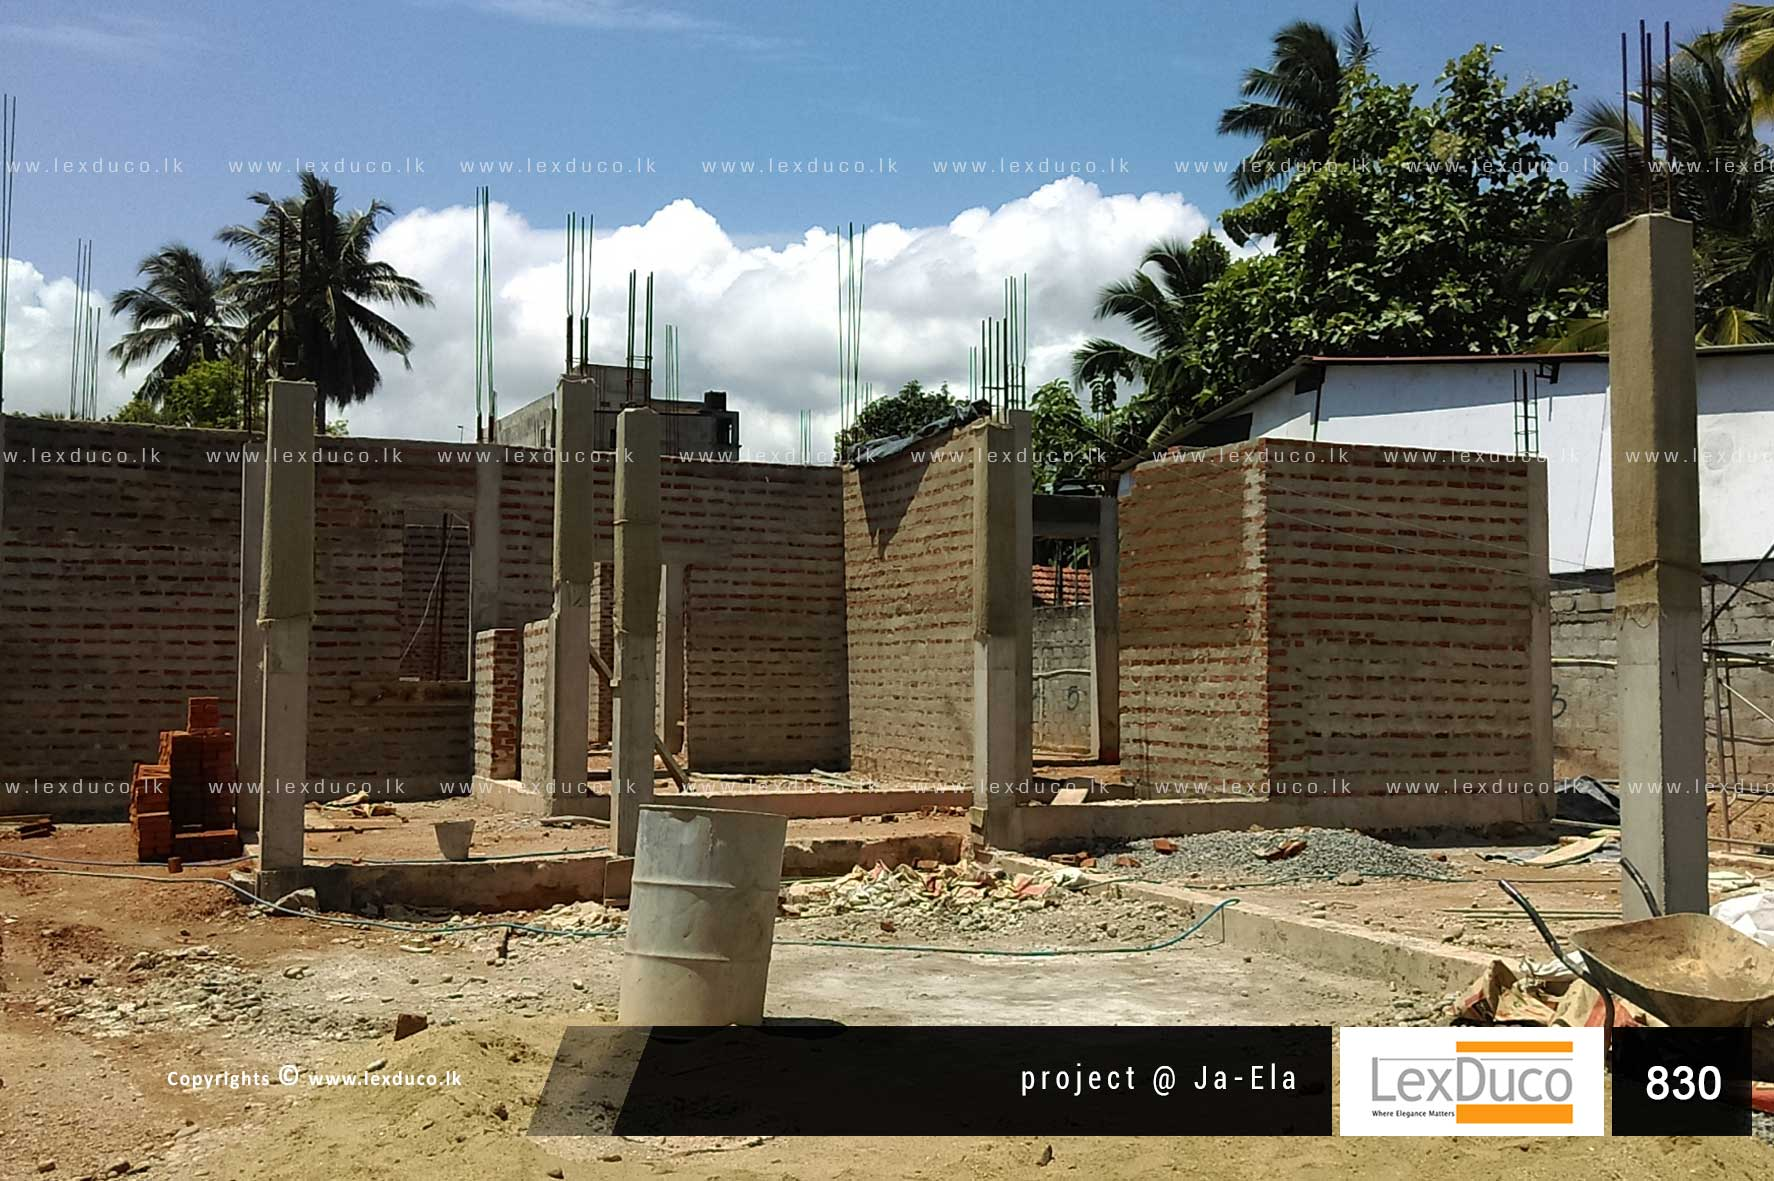 Residential Housing Project at Ja - Ela | Lex Duco